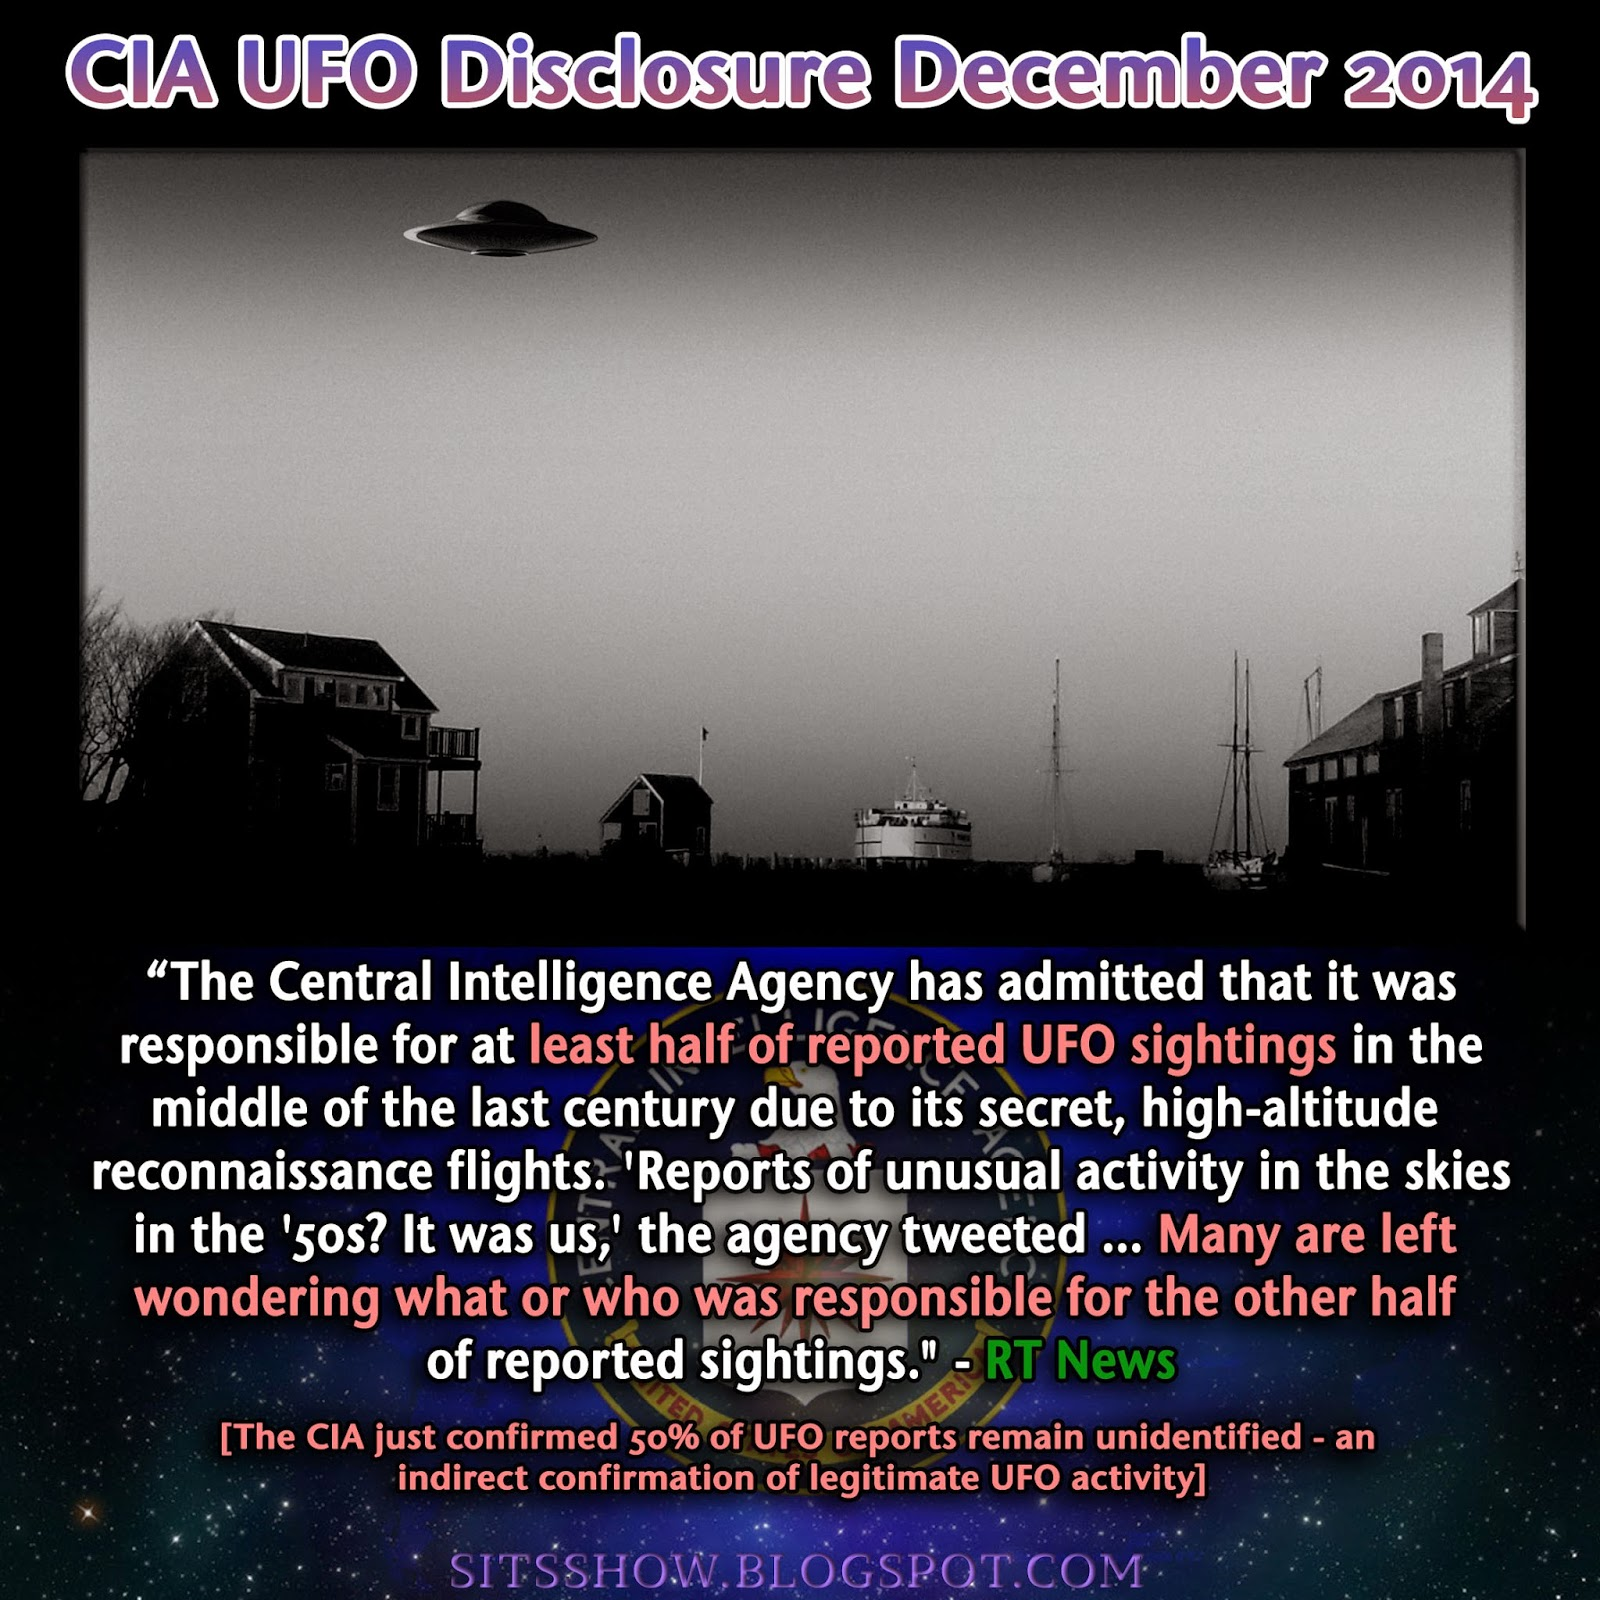 CIA UFO Disclosure | 'It was us': CIA 'fesses up on UFO sightings in 1950-60s: Released December 2014